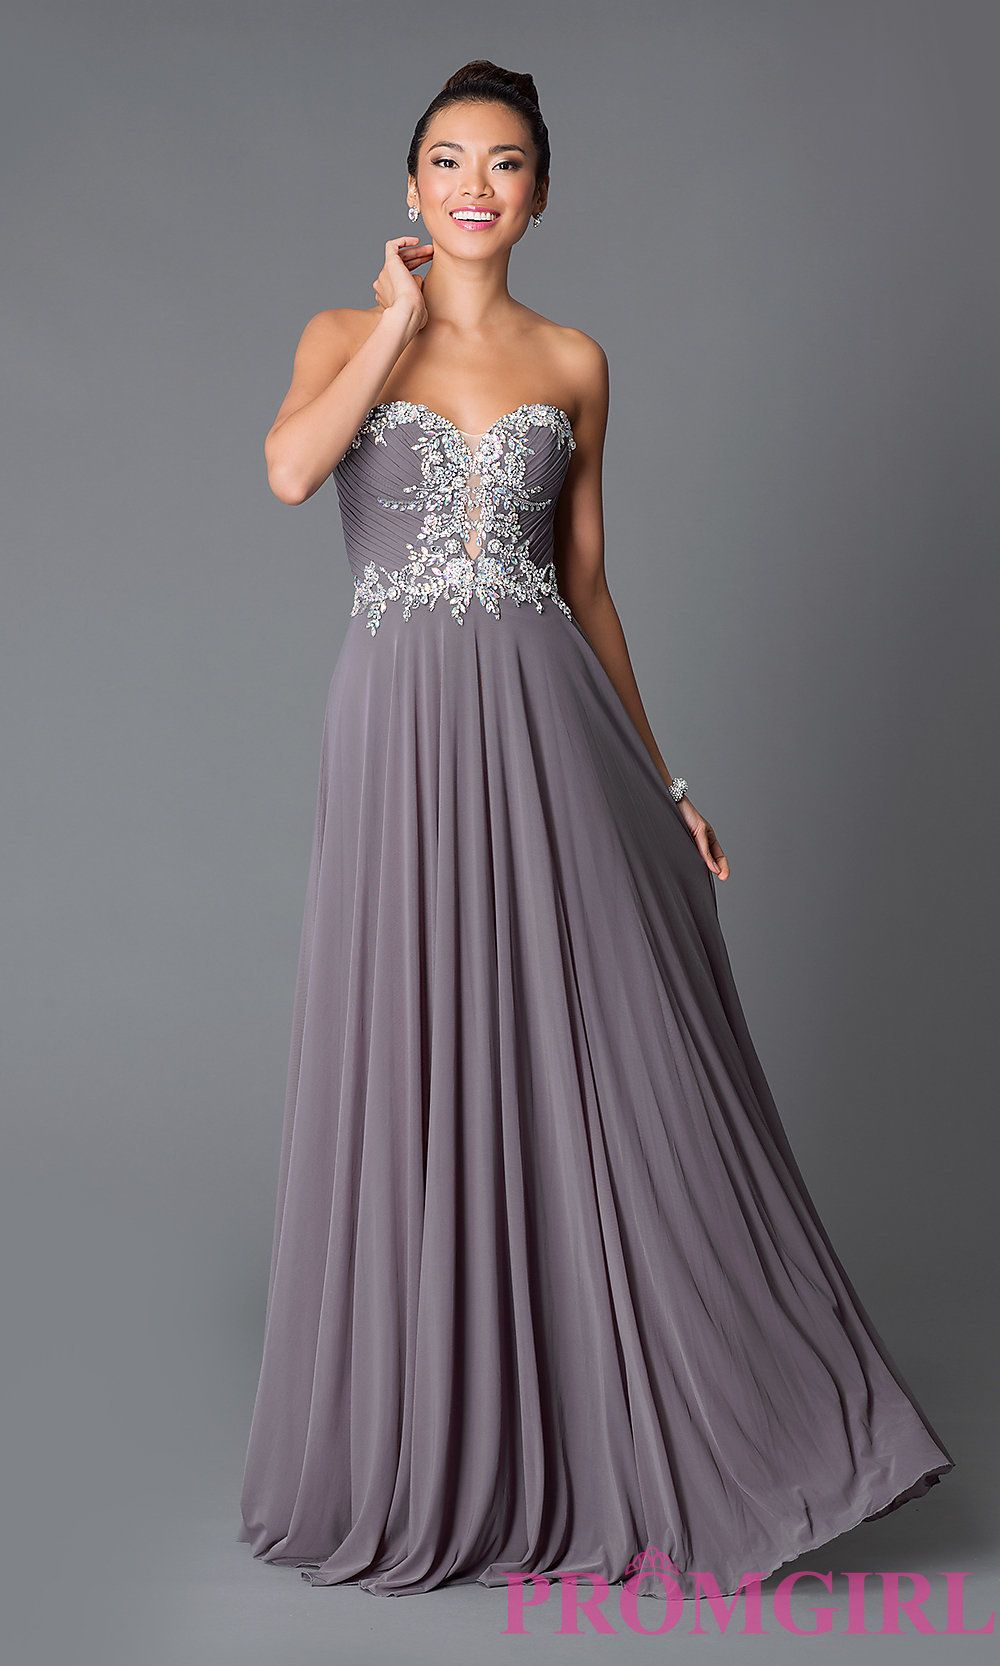 Jovani long strapless sweetheart dress JVN 33470, Color Gunmetal, Sz ...